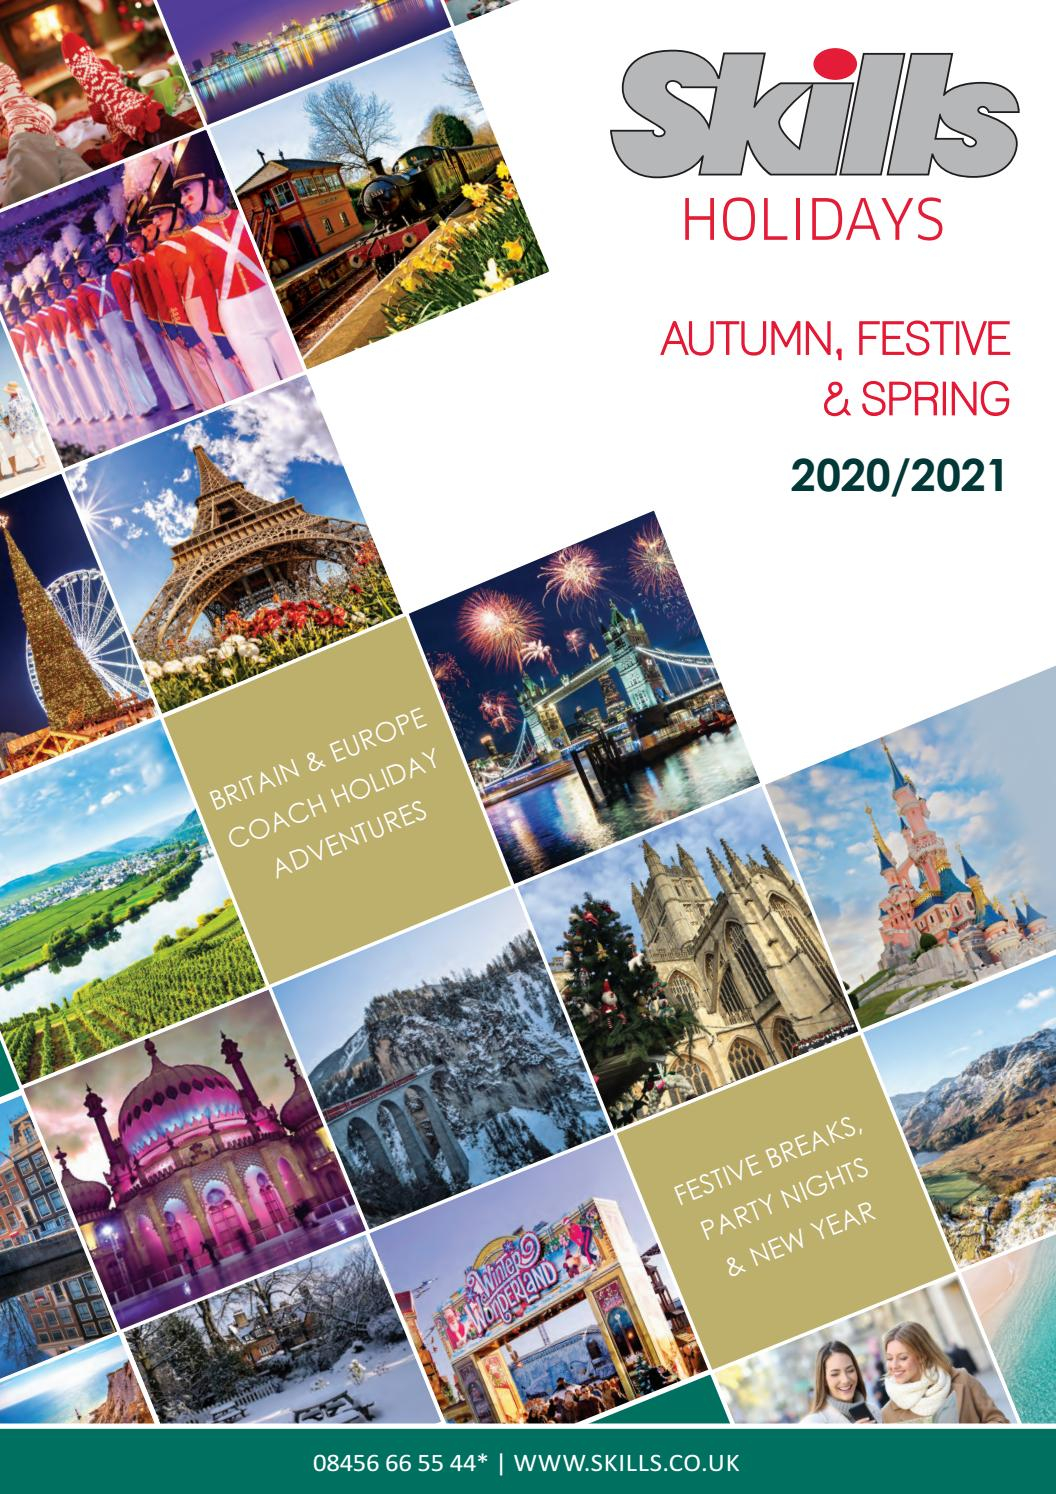 Autumn, Festive & Spring 2020/2021 Holiday Brochure With University Of Glasgow Holiday Calender 2021